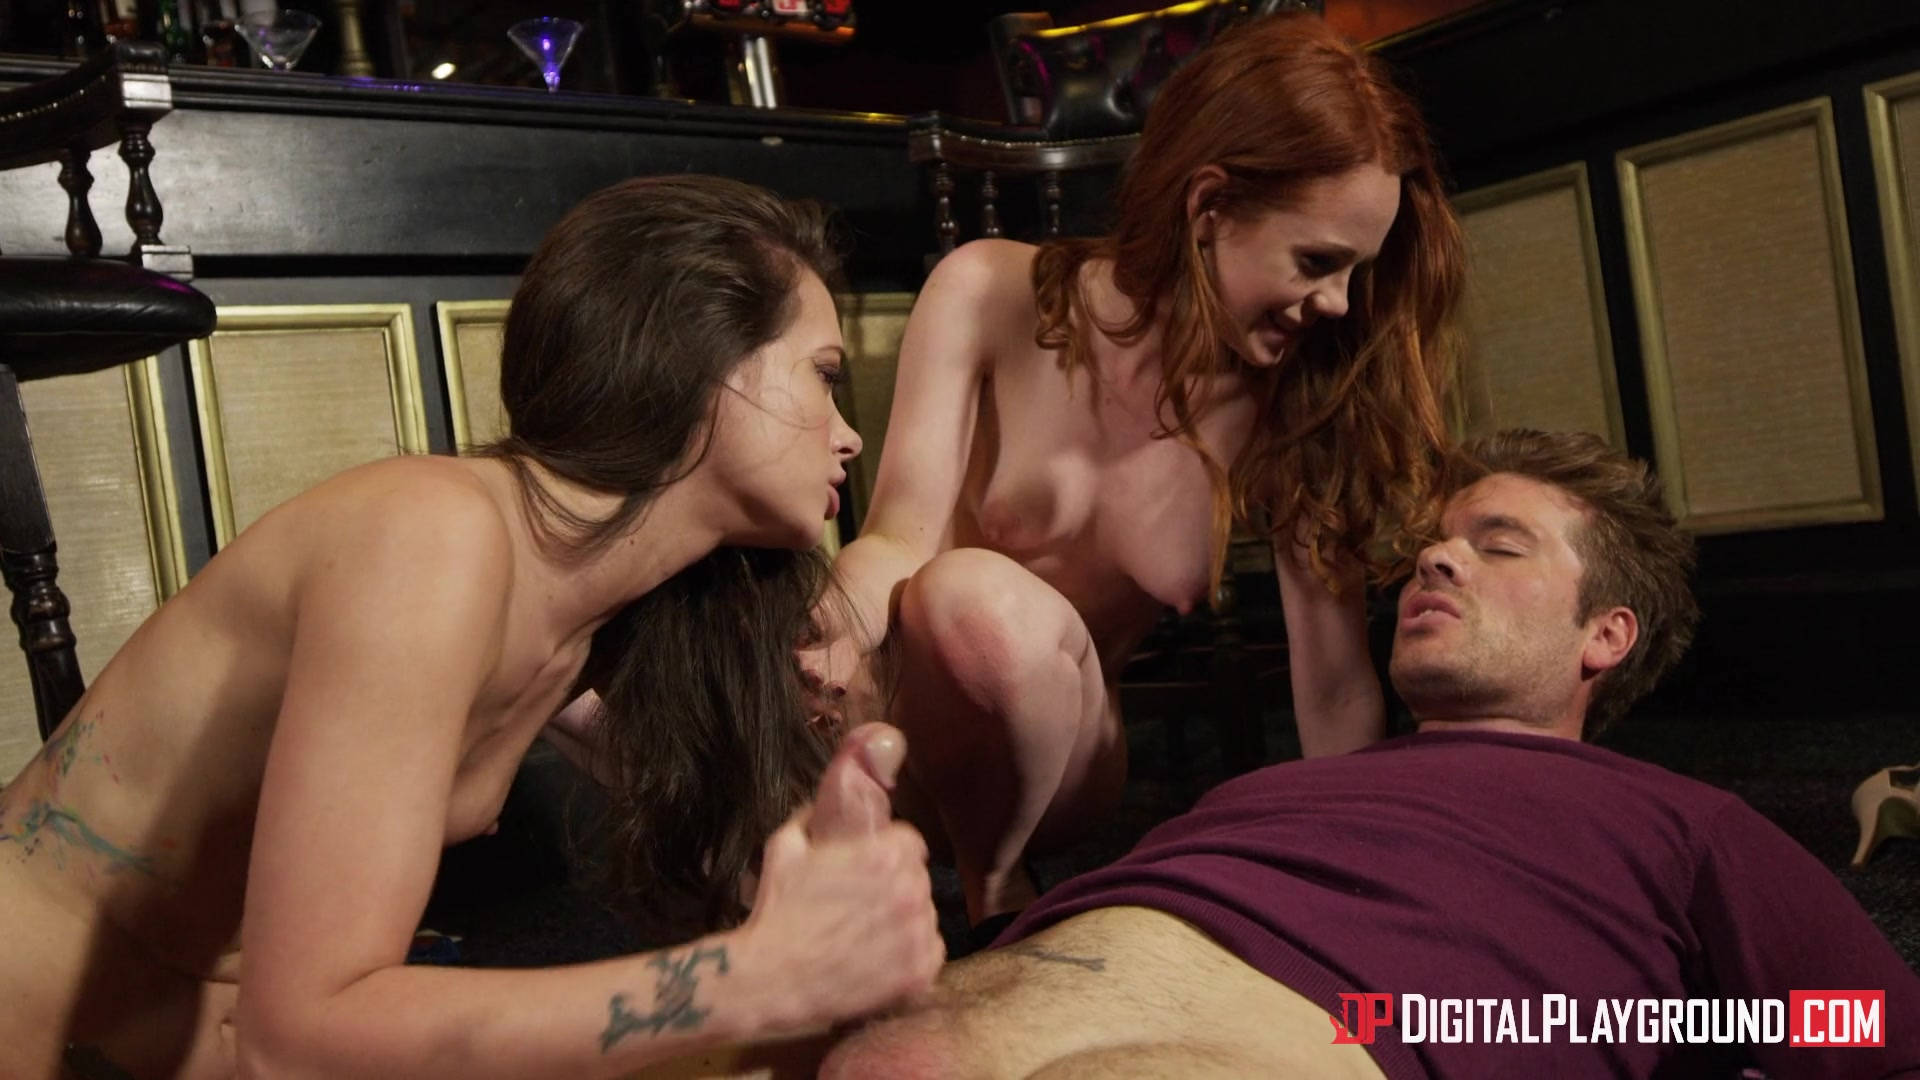 Redhead Ella Hughes and Brunette Gia Paige Share His Big Dick in a Hot  Threesome from How I Fucked Your Mother | Digital Playground | Adult Empire  Unlimited